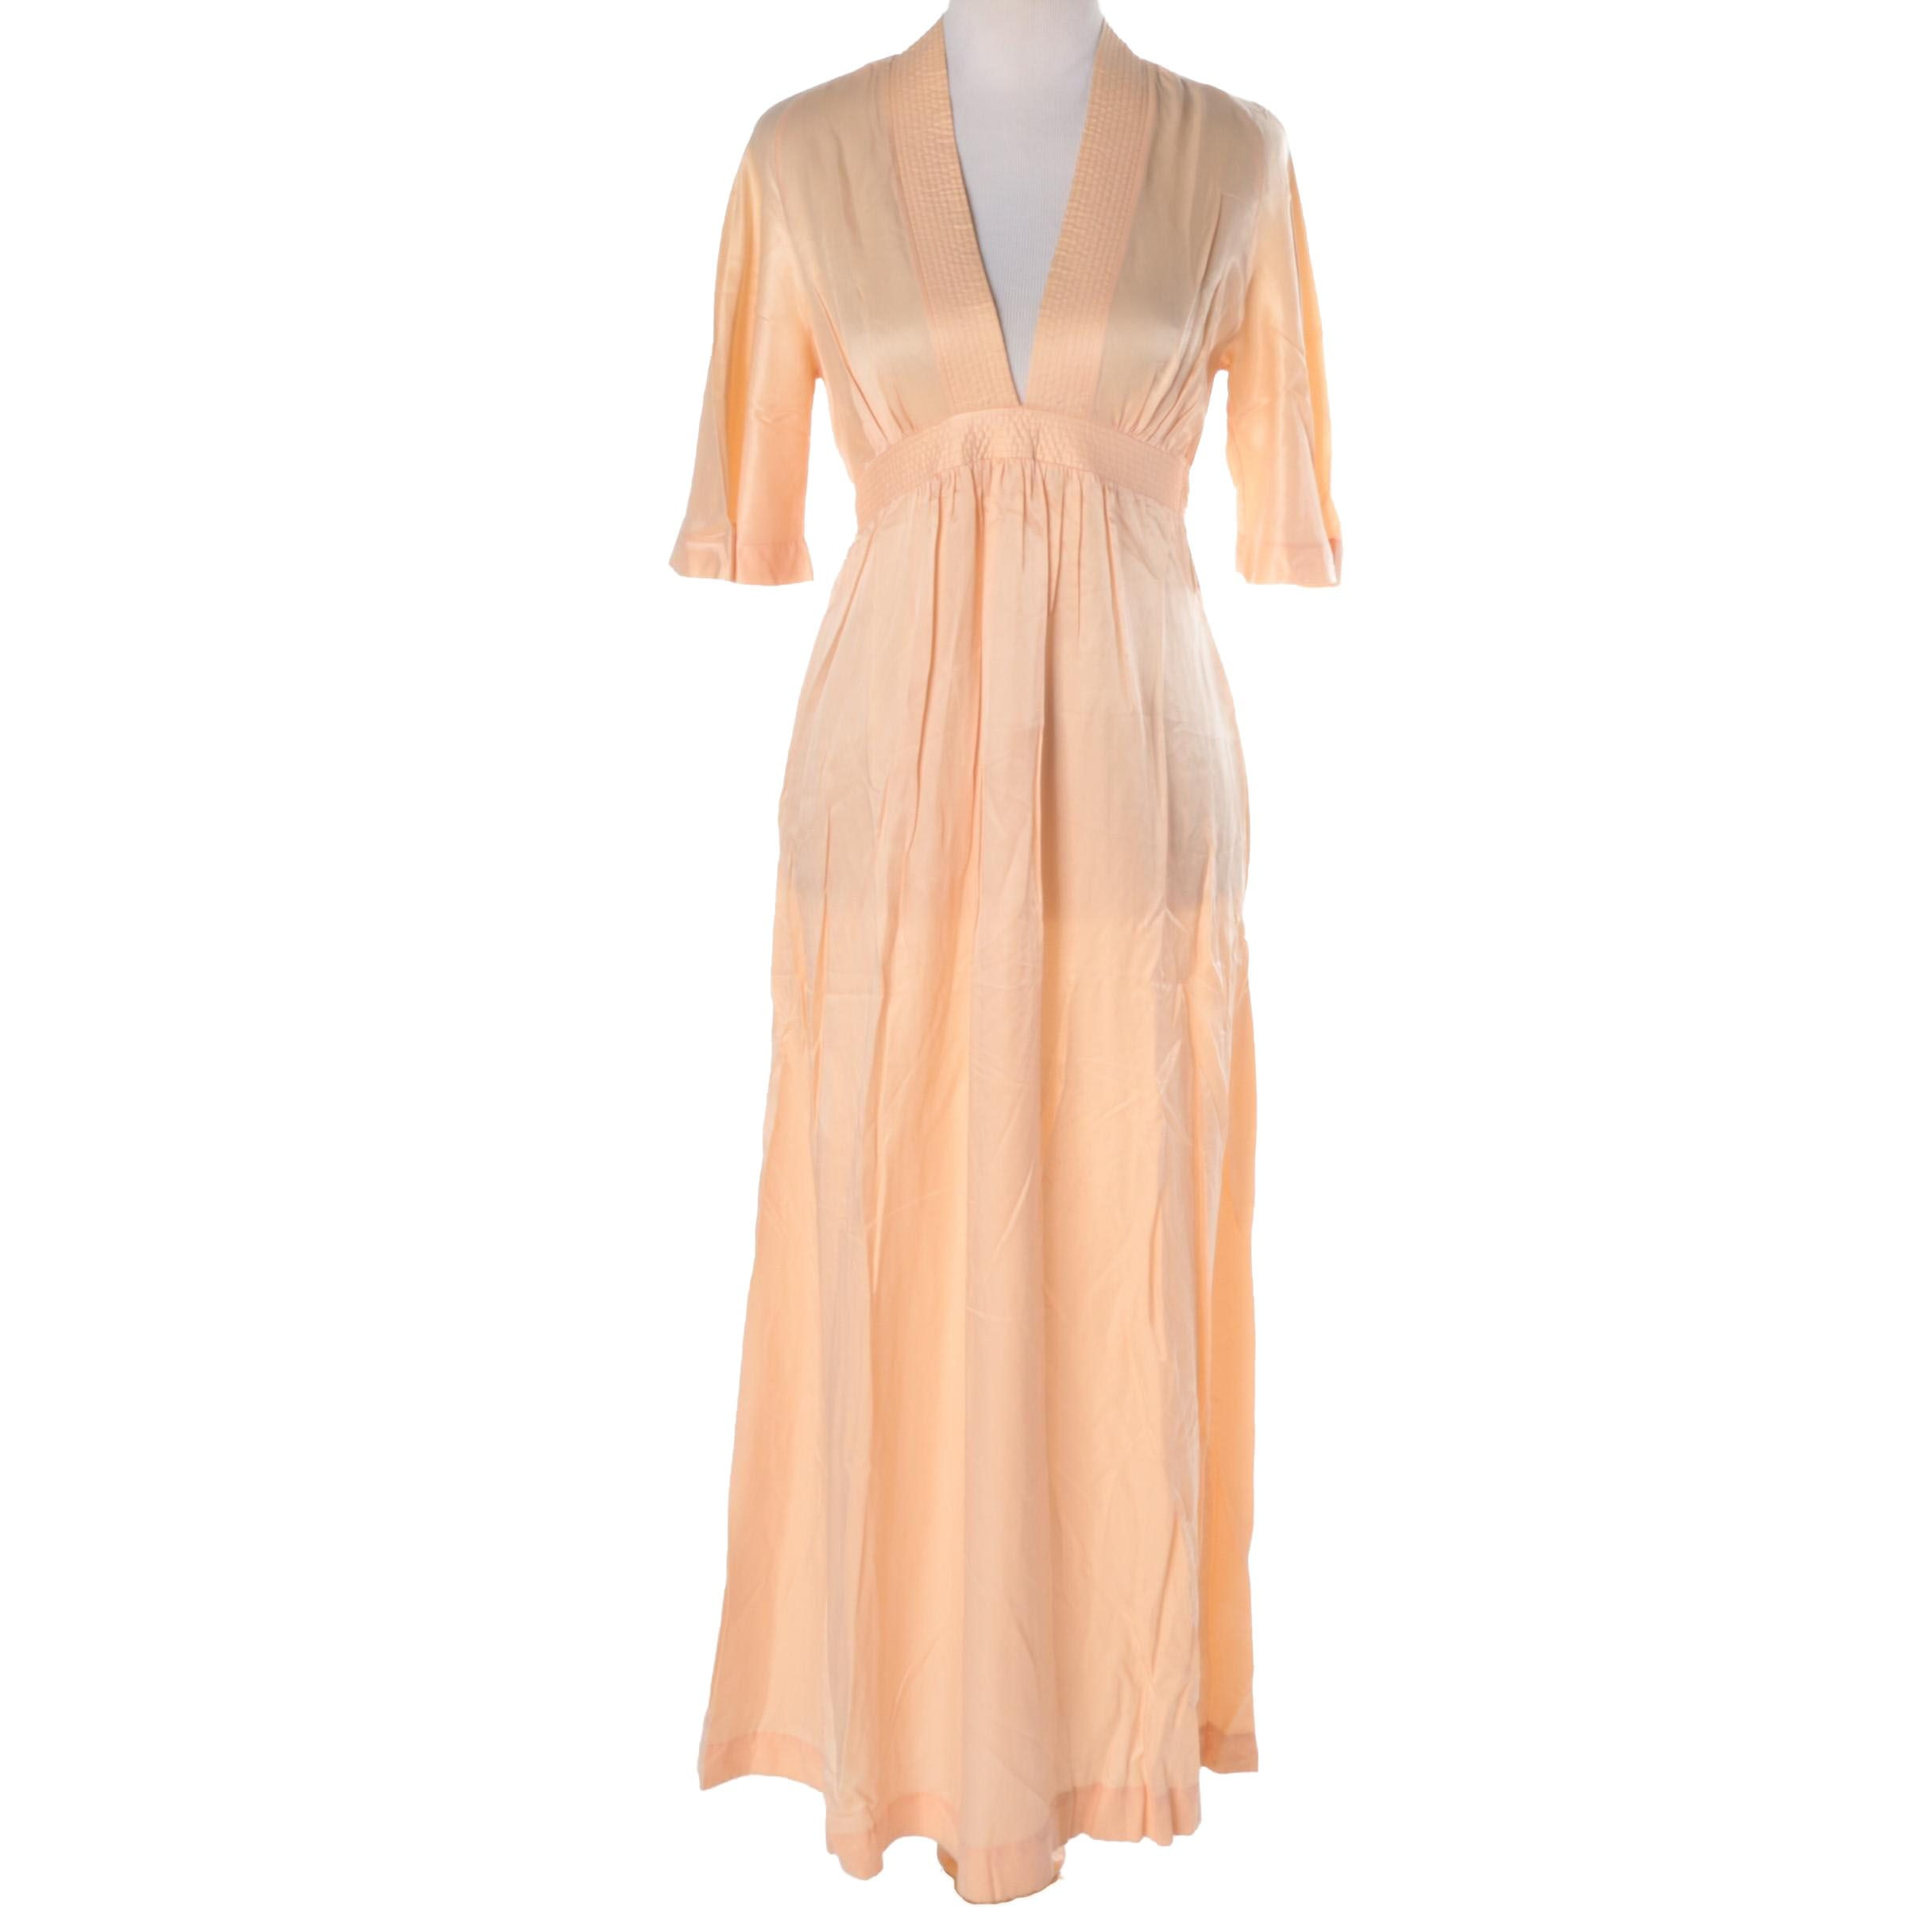 Christian Dior Polyester and Nylon Nightgown